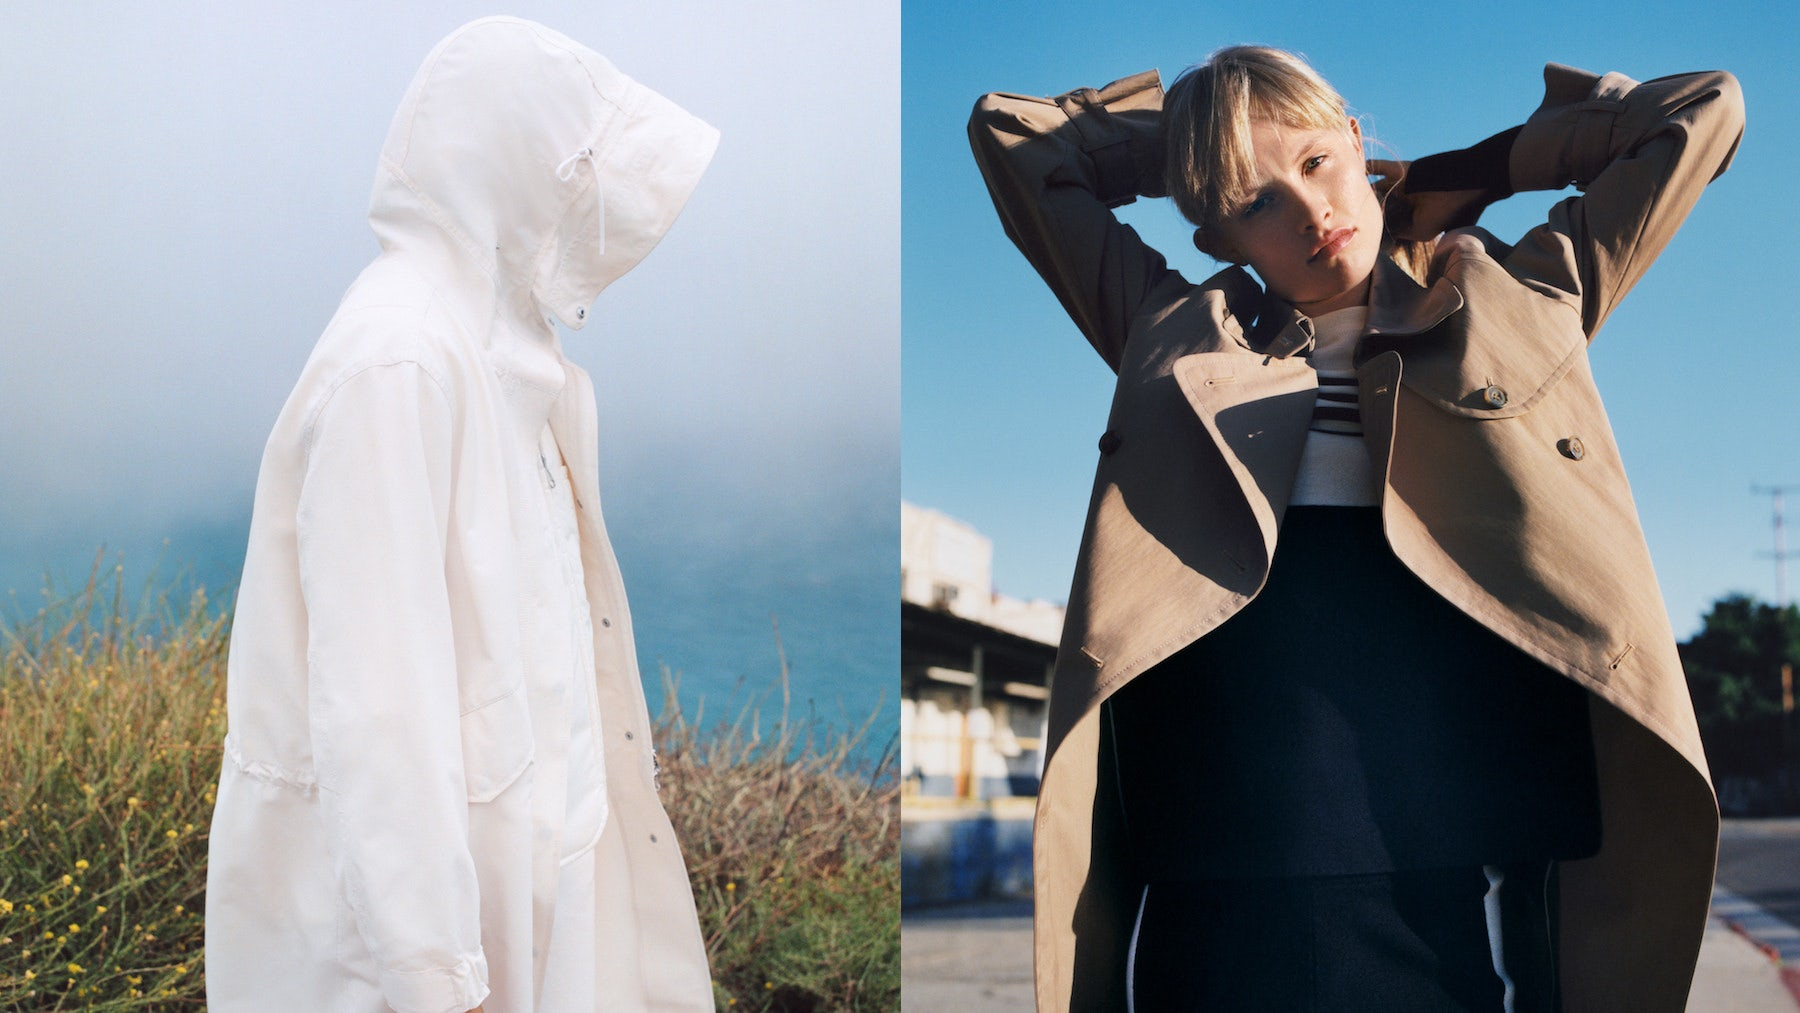 Arket: The New Fashion Store From HM recommendations